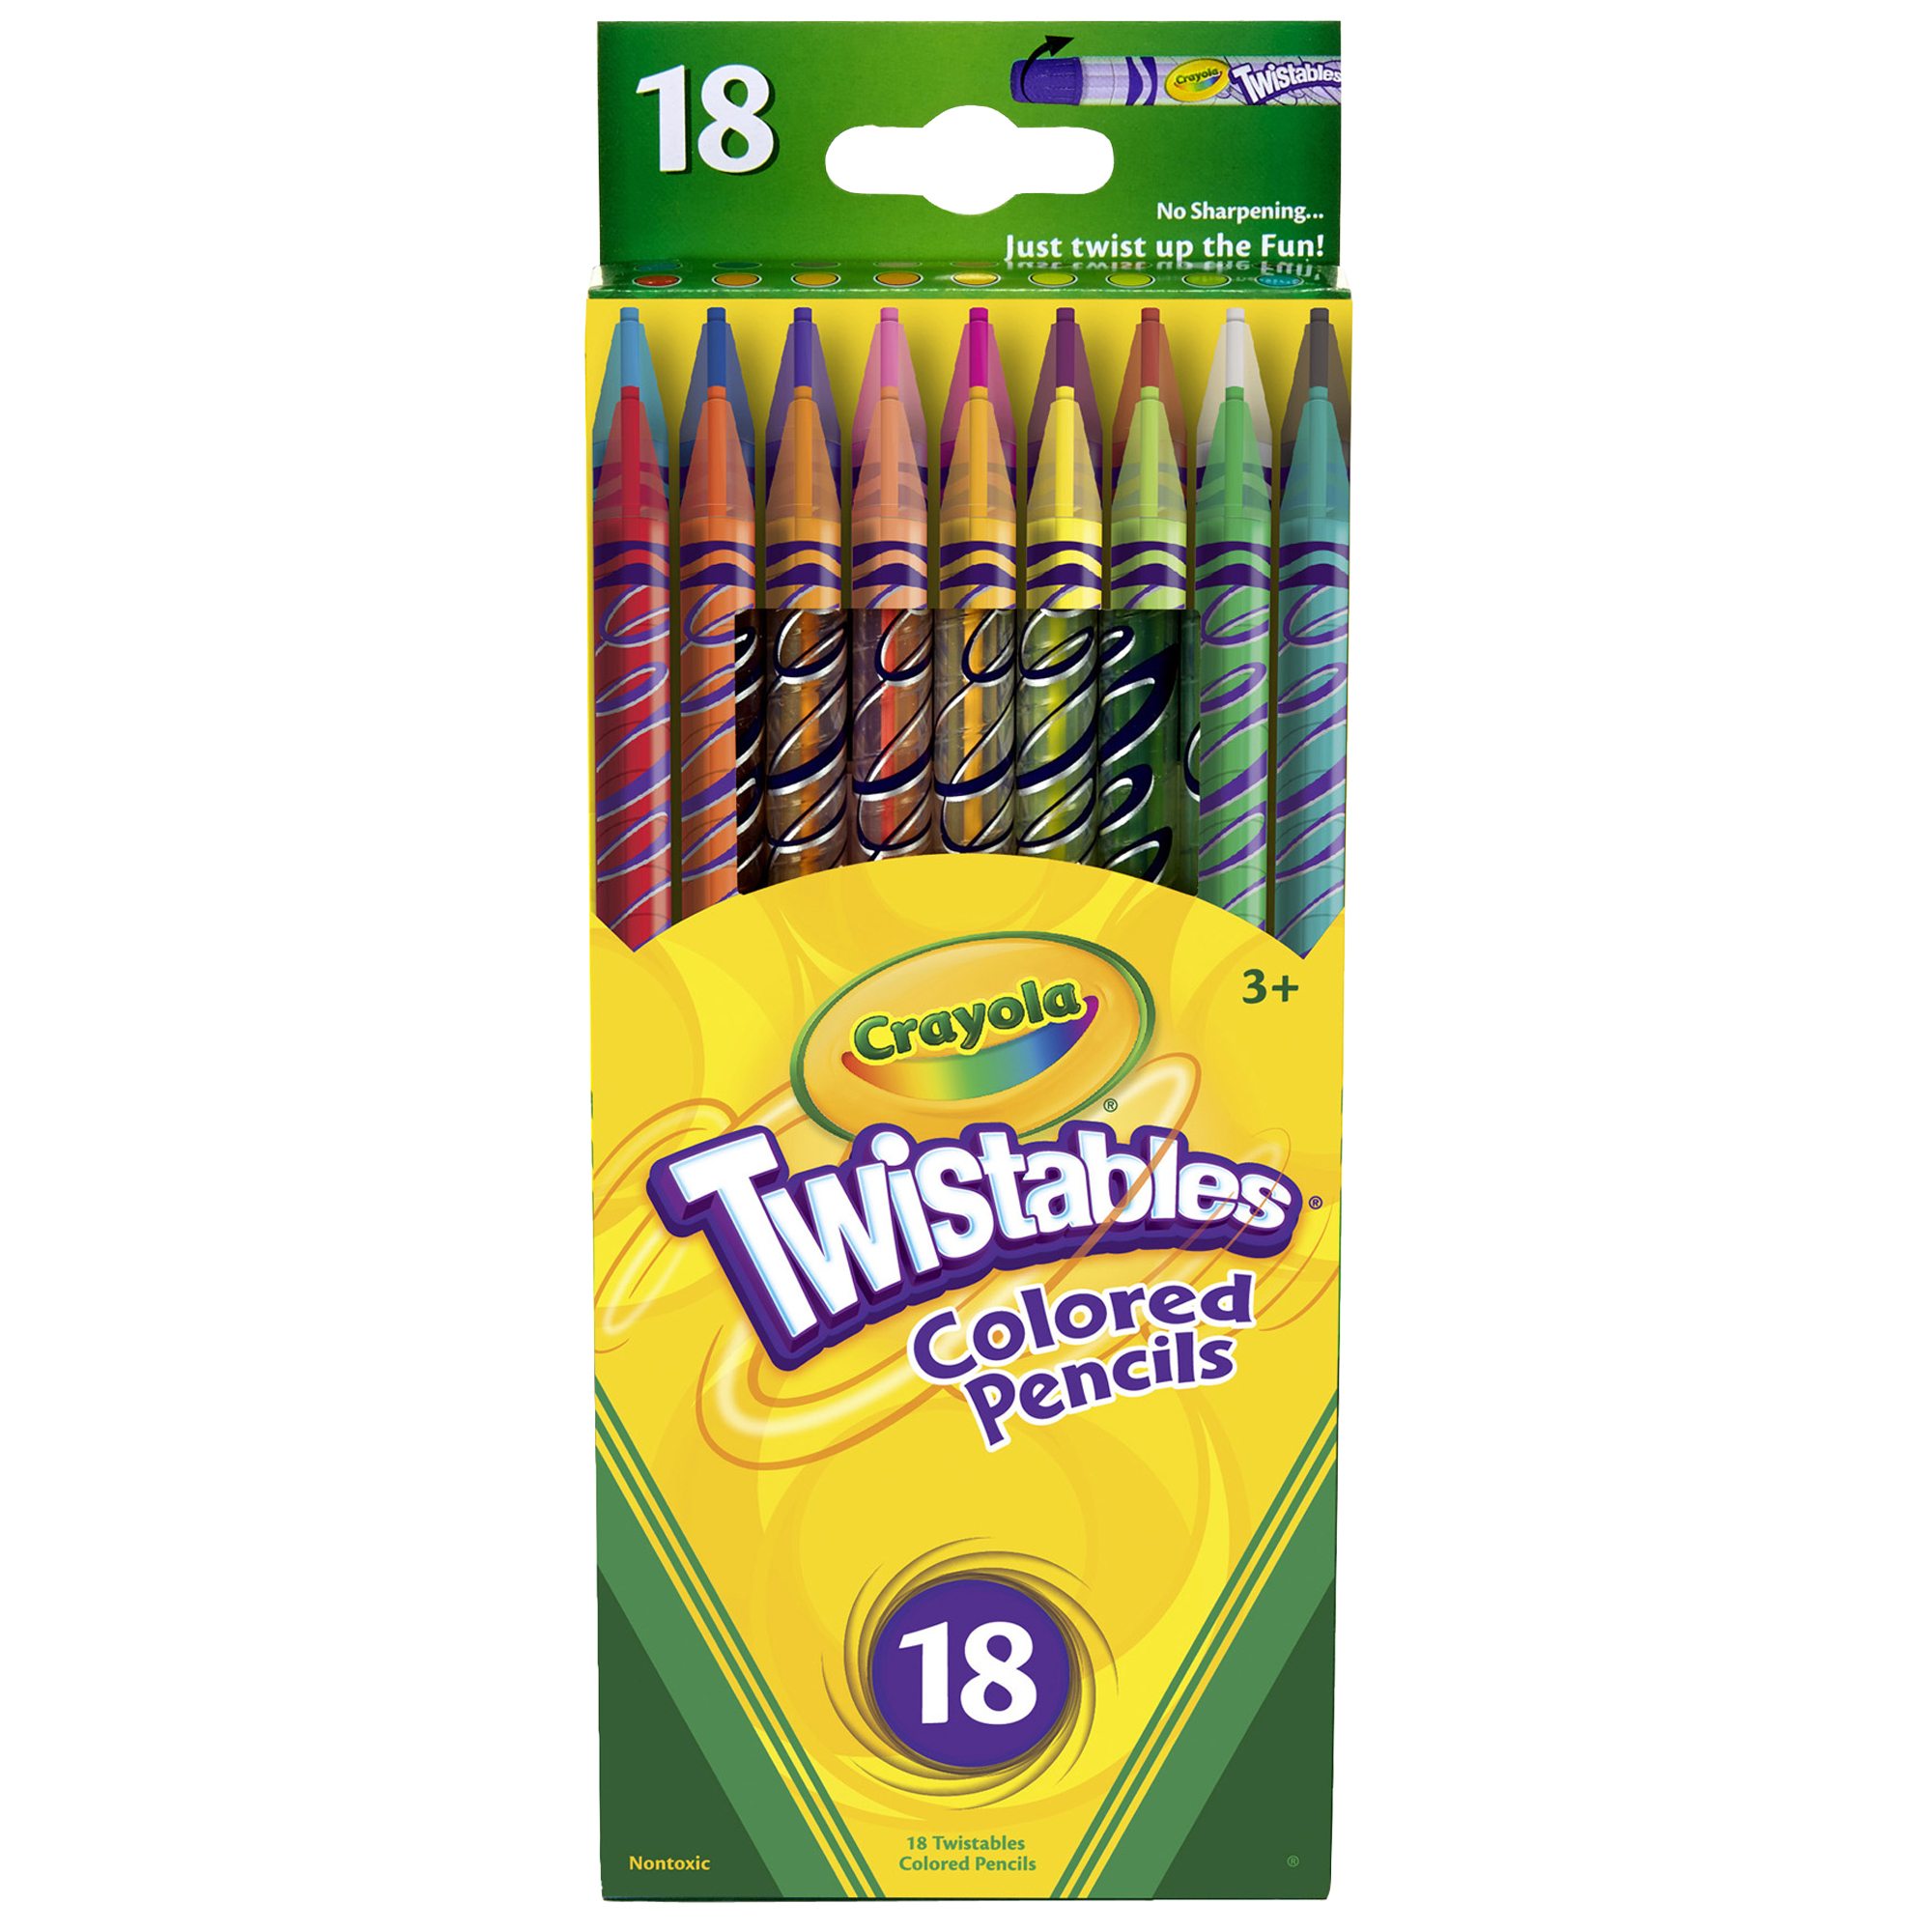 Crayola Twistables Colored Pencils, 18 Count (Packs Of 3)